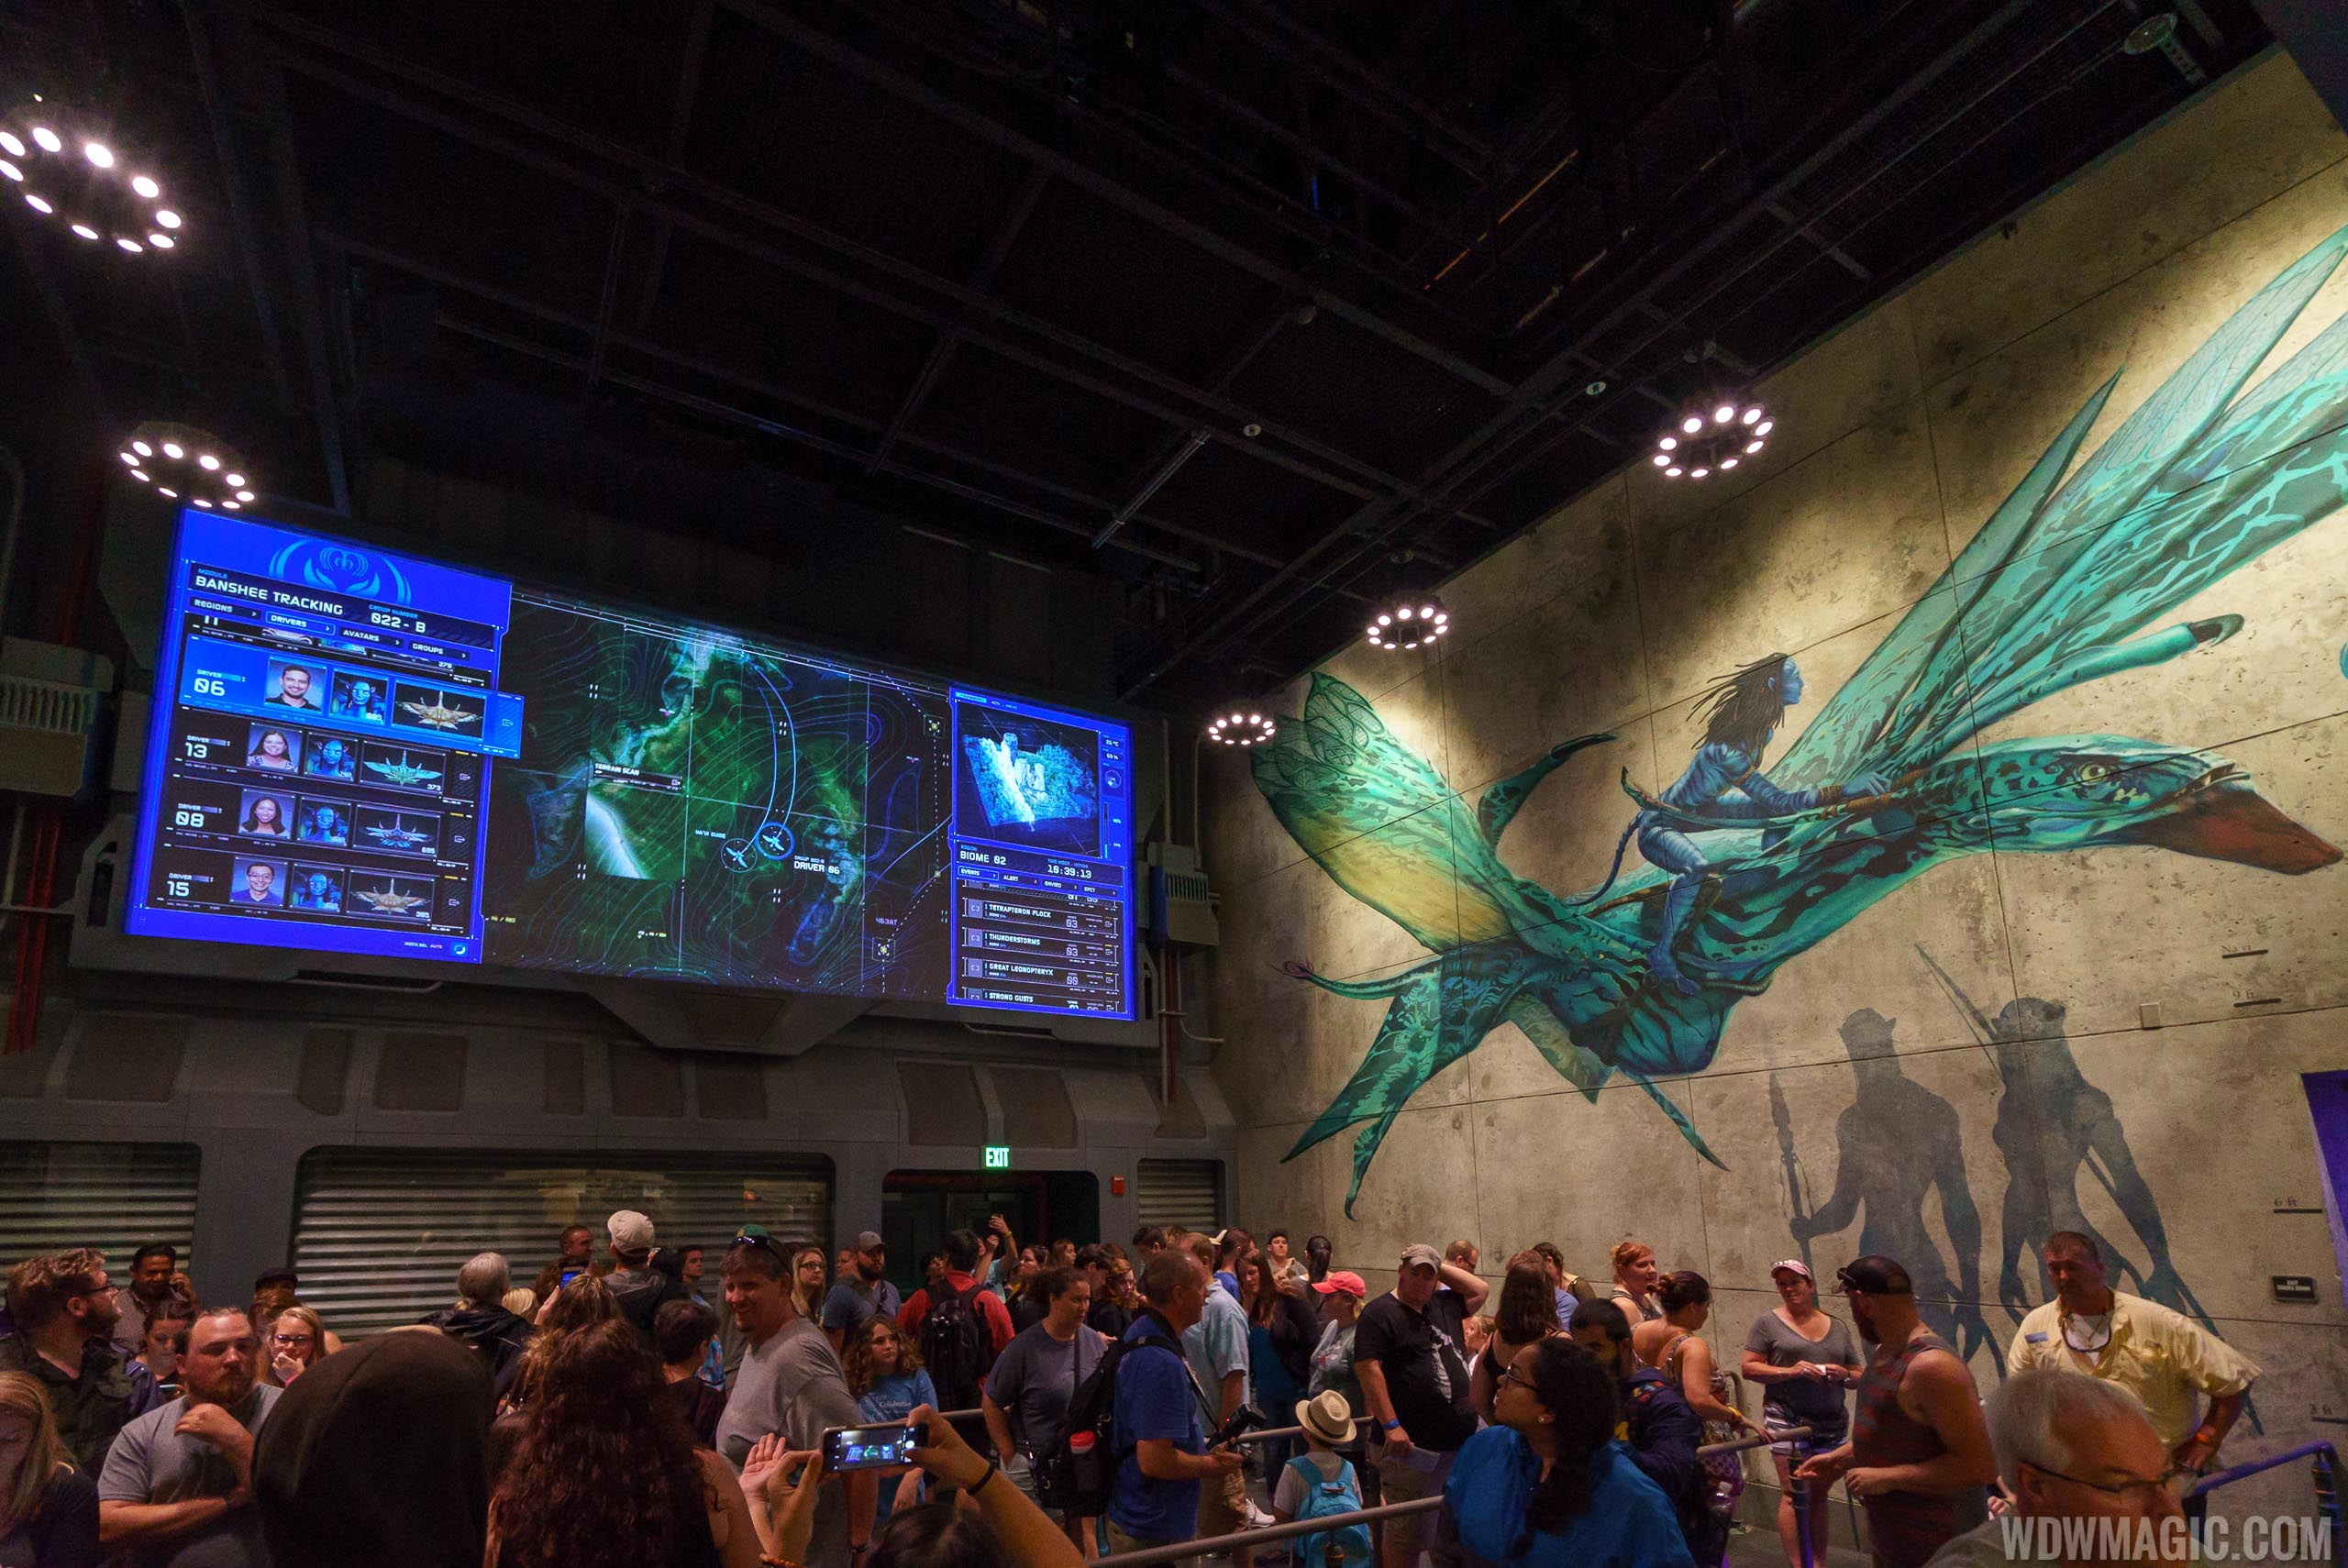 Avatar Flight of Passage tour